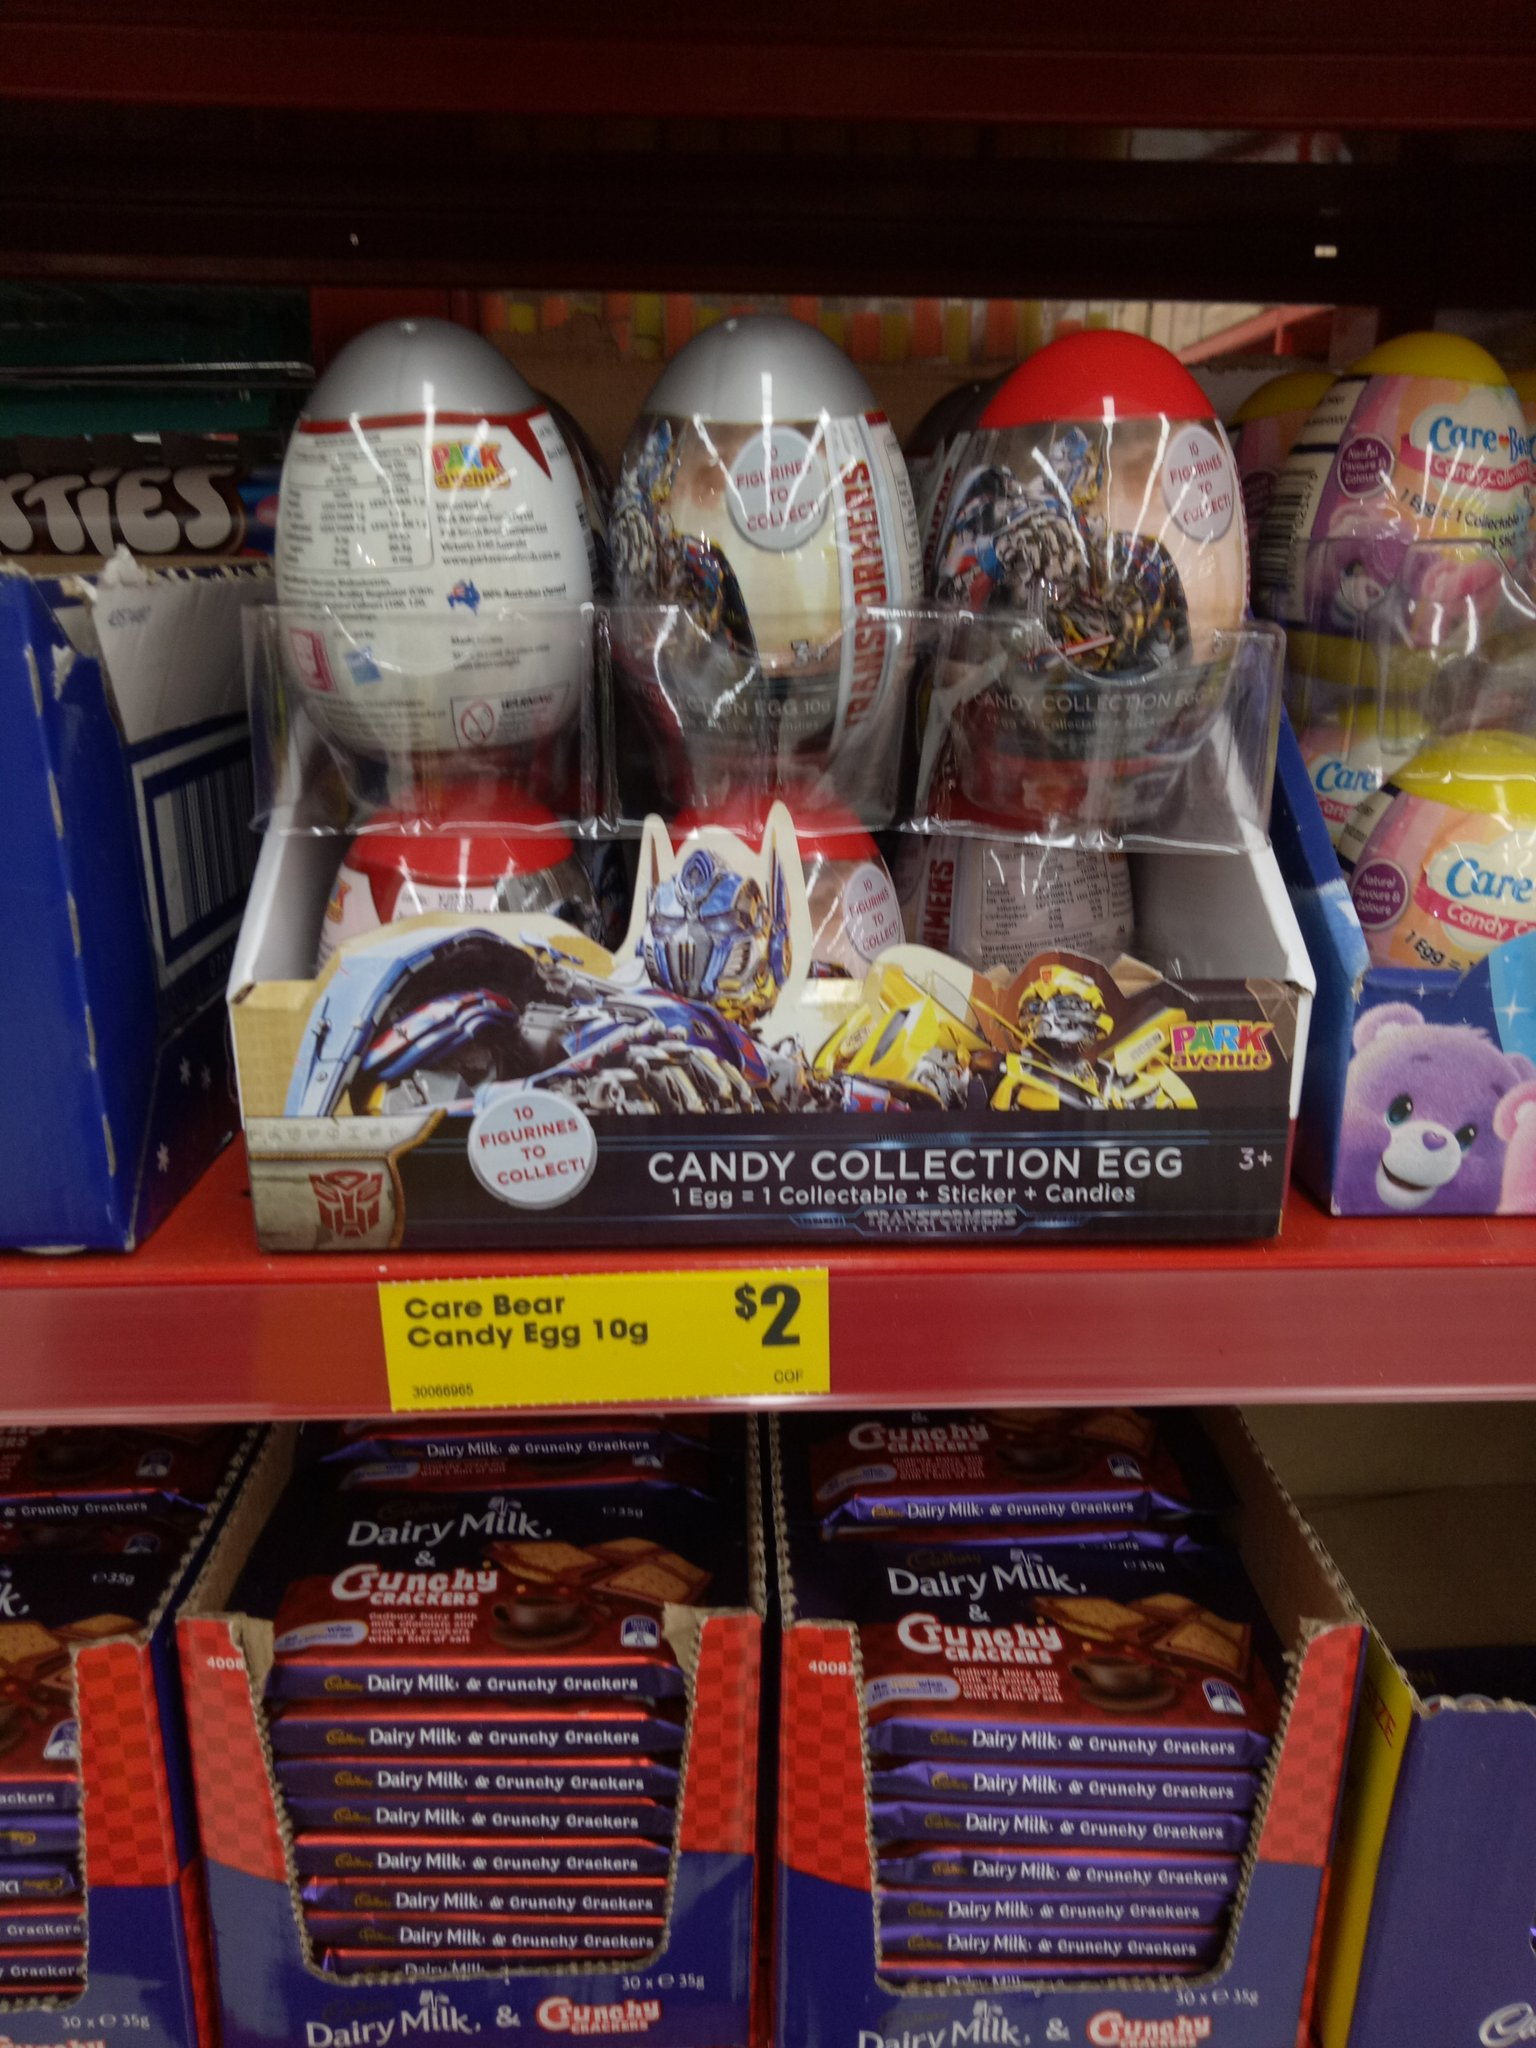 Transformers The Last Knight Candy Collection Egg